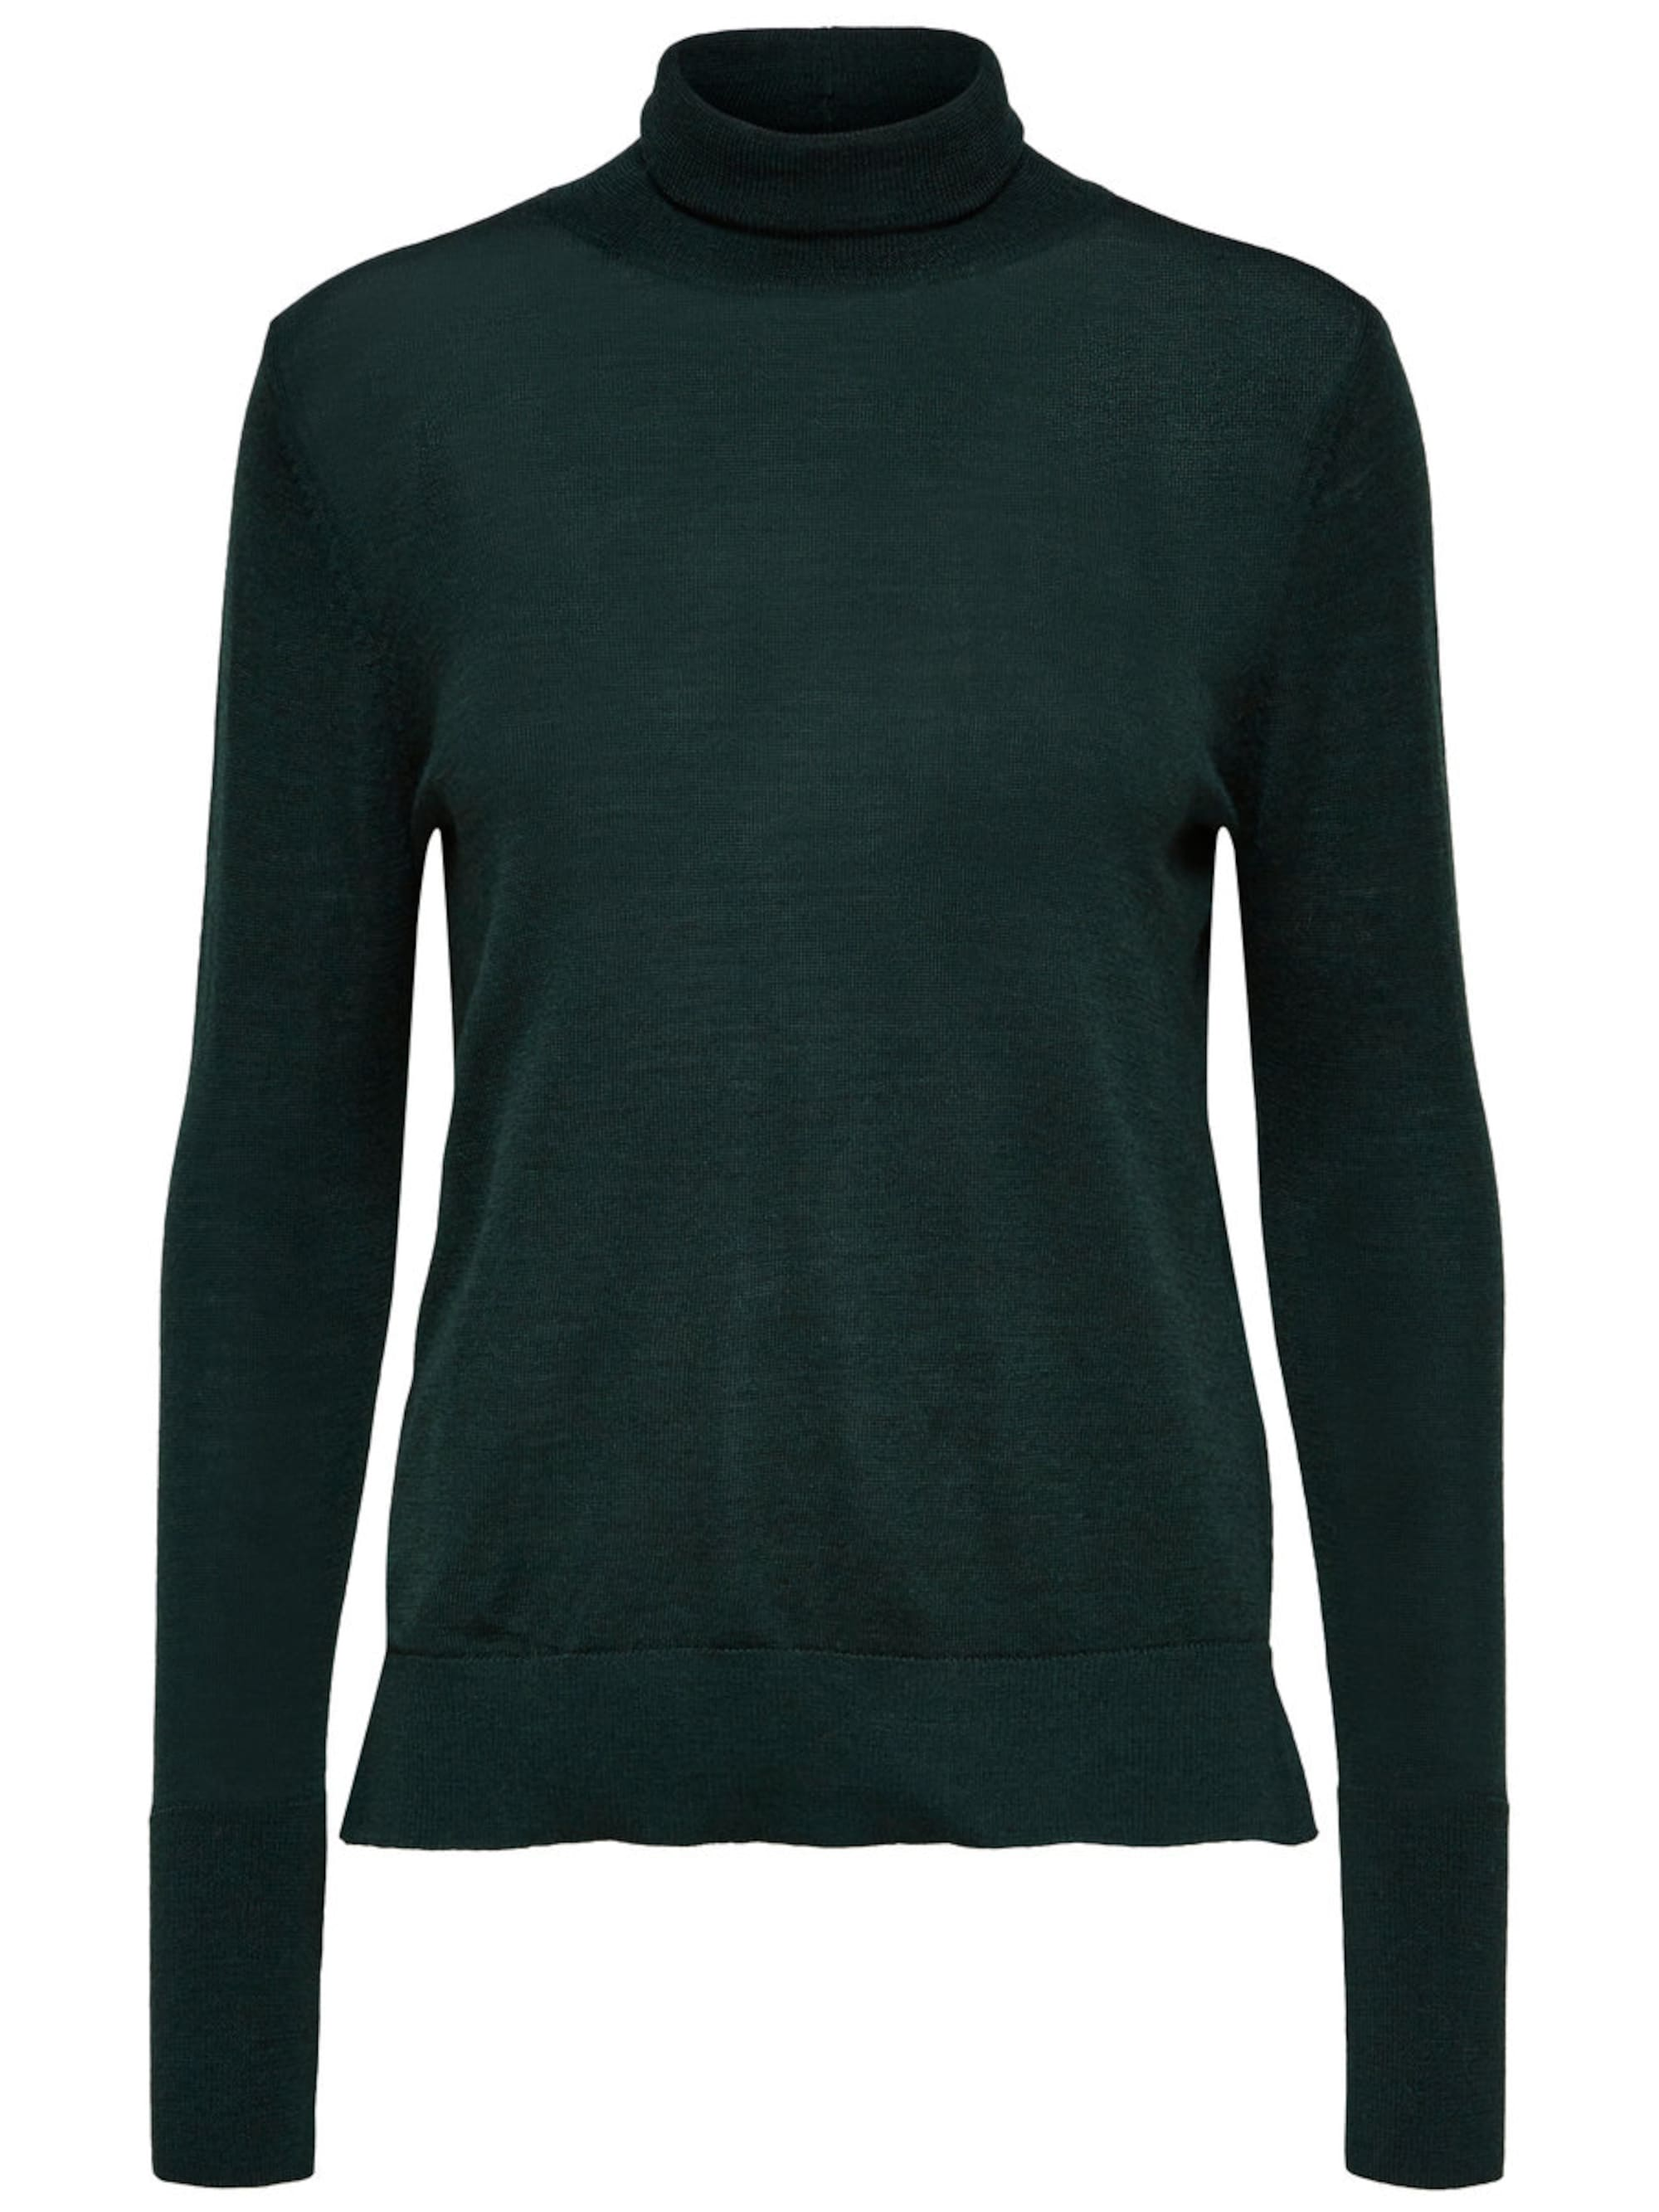 selected femme - Pullover